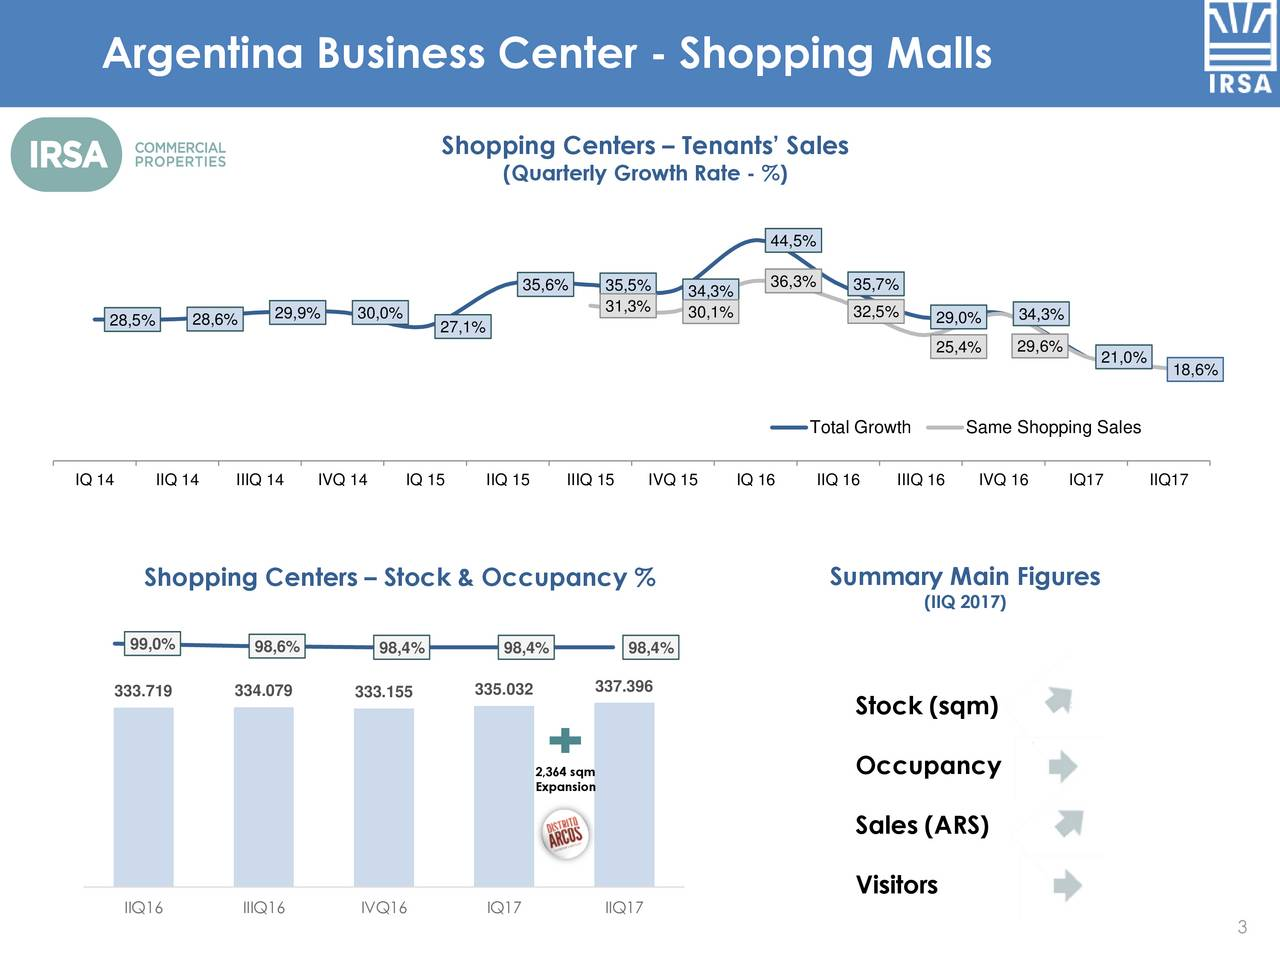 Shopping Centers  Tenants Sales (Quarterly Growth Rate - %) 44,5% 36,3% 35,6% 35,5% 34,3% 35,7% 29,9% 30,0% 31,3% 30,1% 32,5% 29,0% 34,3% 28,5% 28,6% 27,1% 25,4% 29,6% 21,0% 18,6% Total Growth Same Shopping Sales IQ 14 IIQ 14 IIIQ 14 IVQ 14 IQ 15 IIQ 15 IIIQ 15 IVQ 15 IQ 16 IIQ 16 IIIQ 16 IVQ 16 IQ17 IIQ17 Shopping Centers  Stock & Occupancy % Summary Main Figures (IIQ 2017) 99,0% 98,6% 98,4% 98,4% 98,4% 333.719 334.079 333.155 335.032 337.396 Stock (sqm) 2,364 sqm Occupancy Expansion Sales (ARS) Visitors IIQ16 IIIQ16 IVQ16 IQ17 IIQ17 3